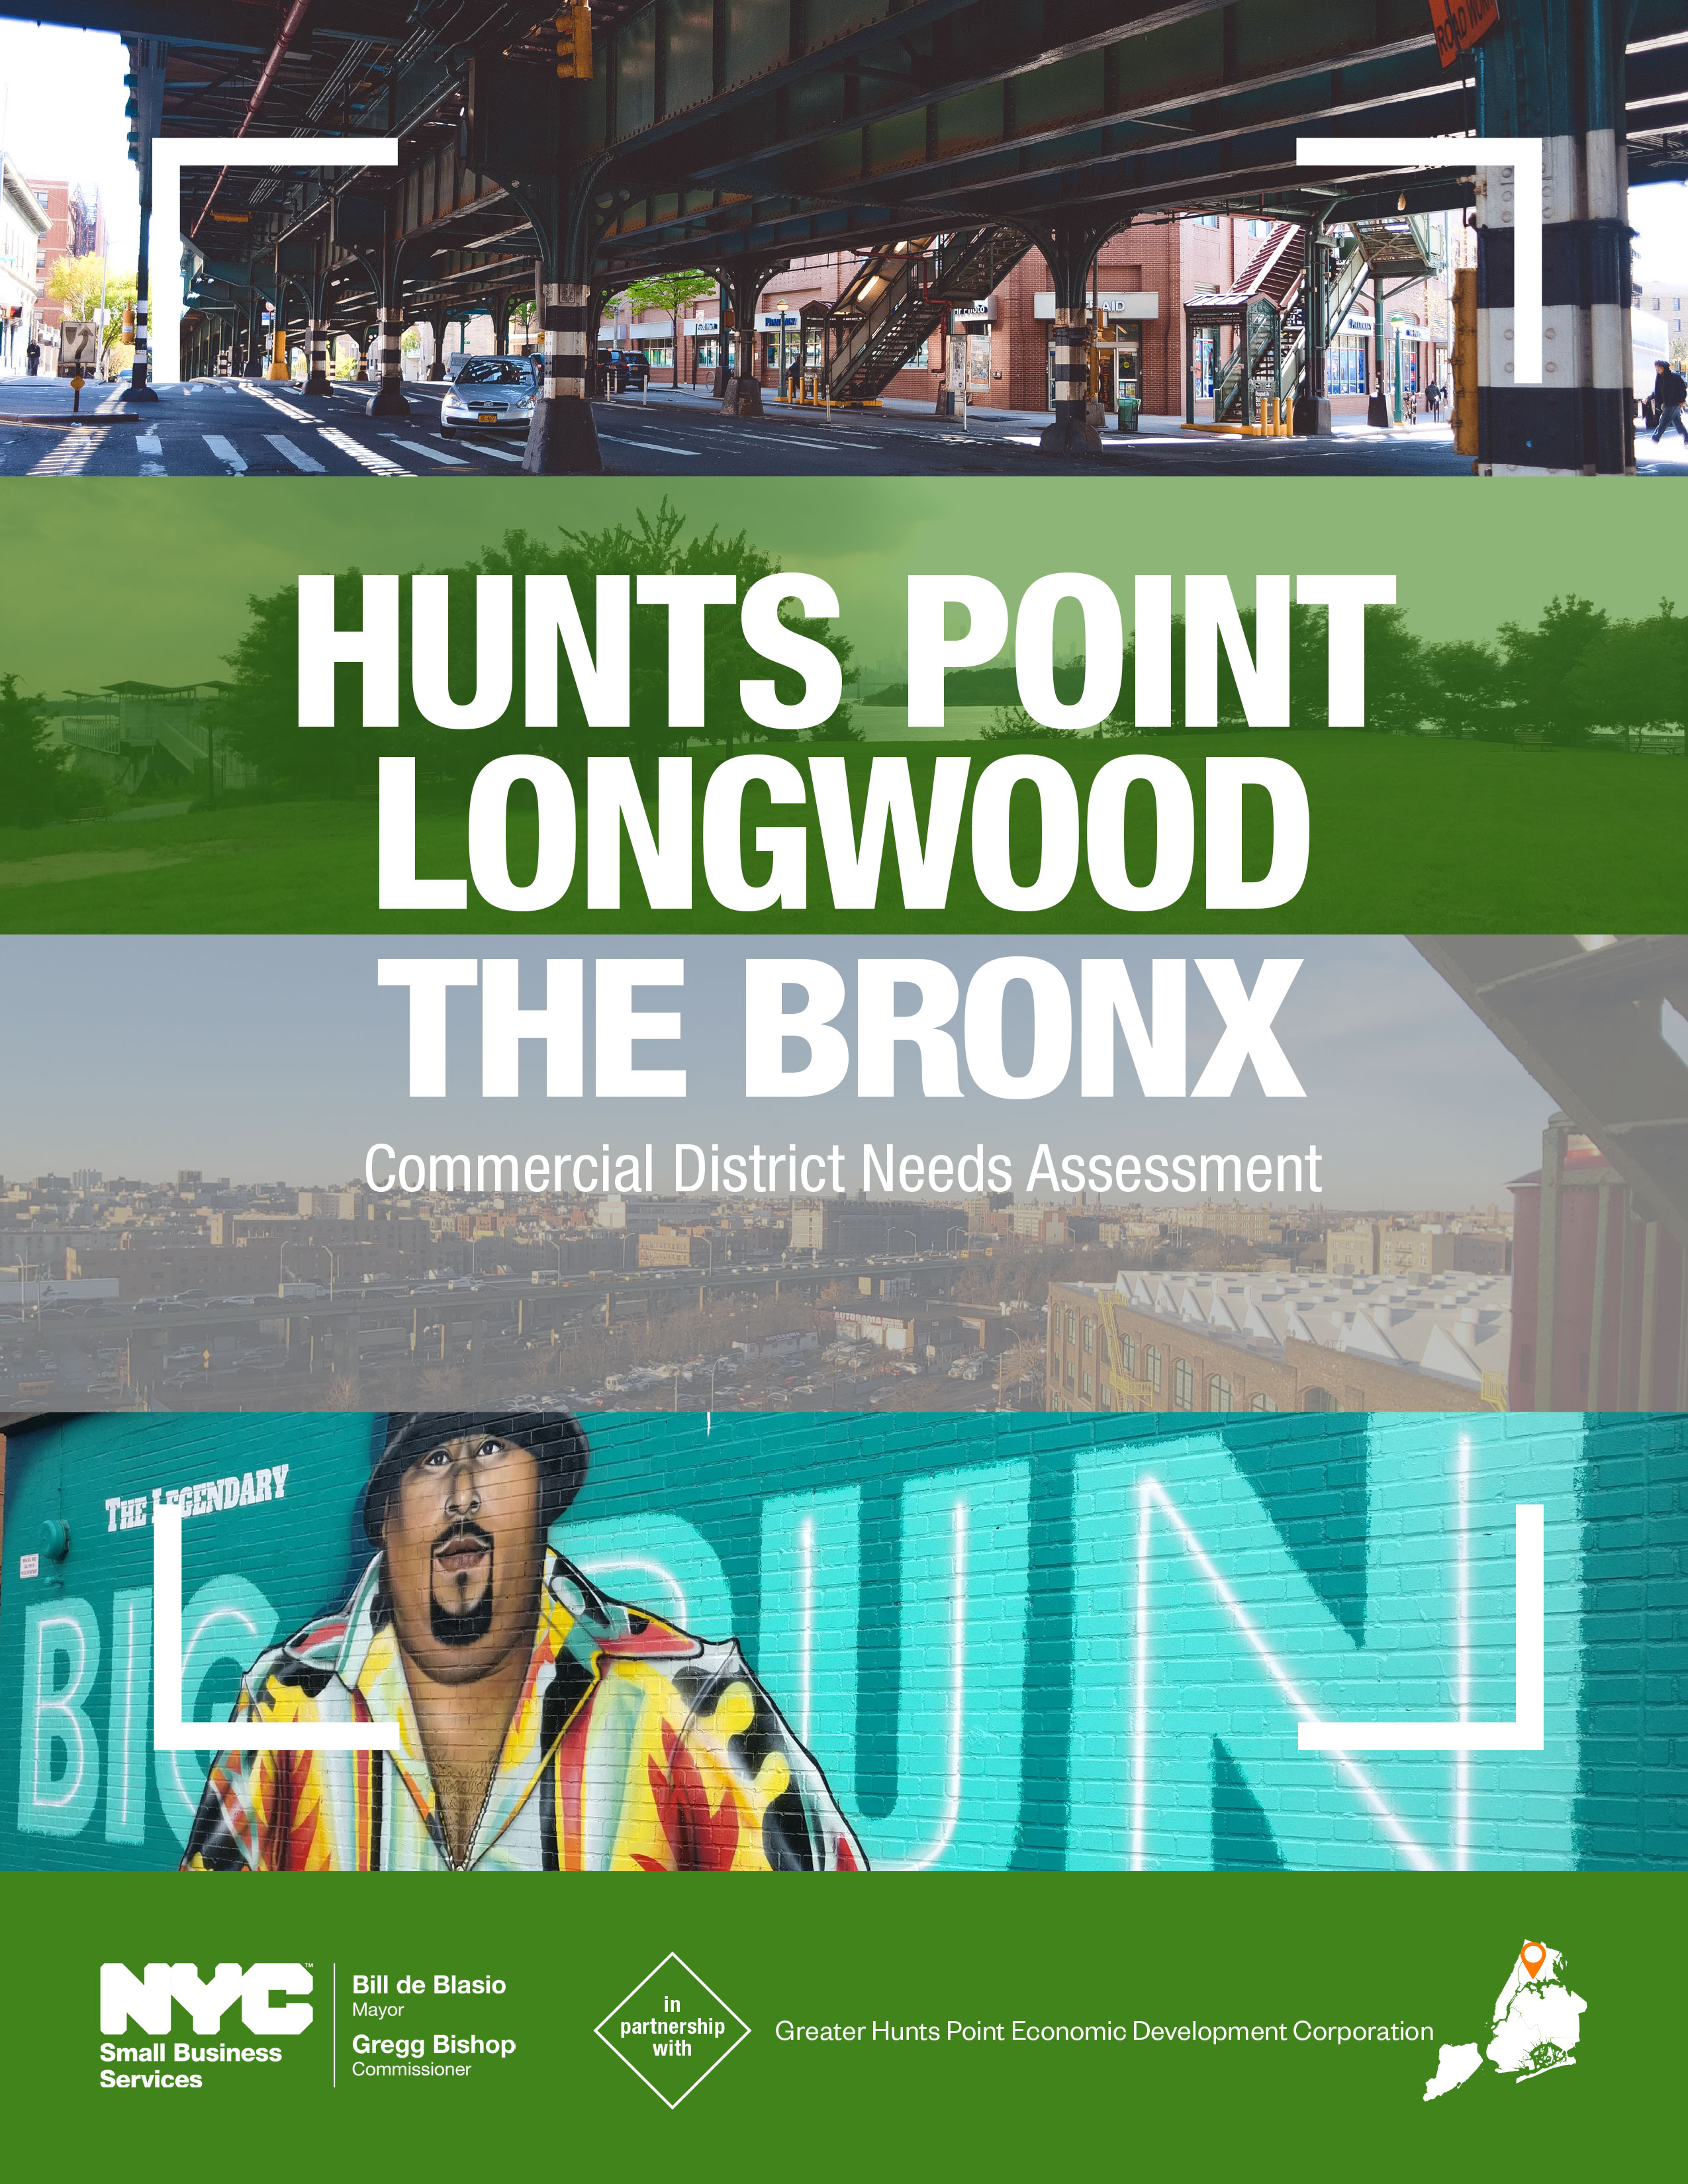 Hunts Point & Longwood Commercial District Needs Assessment